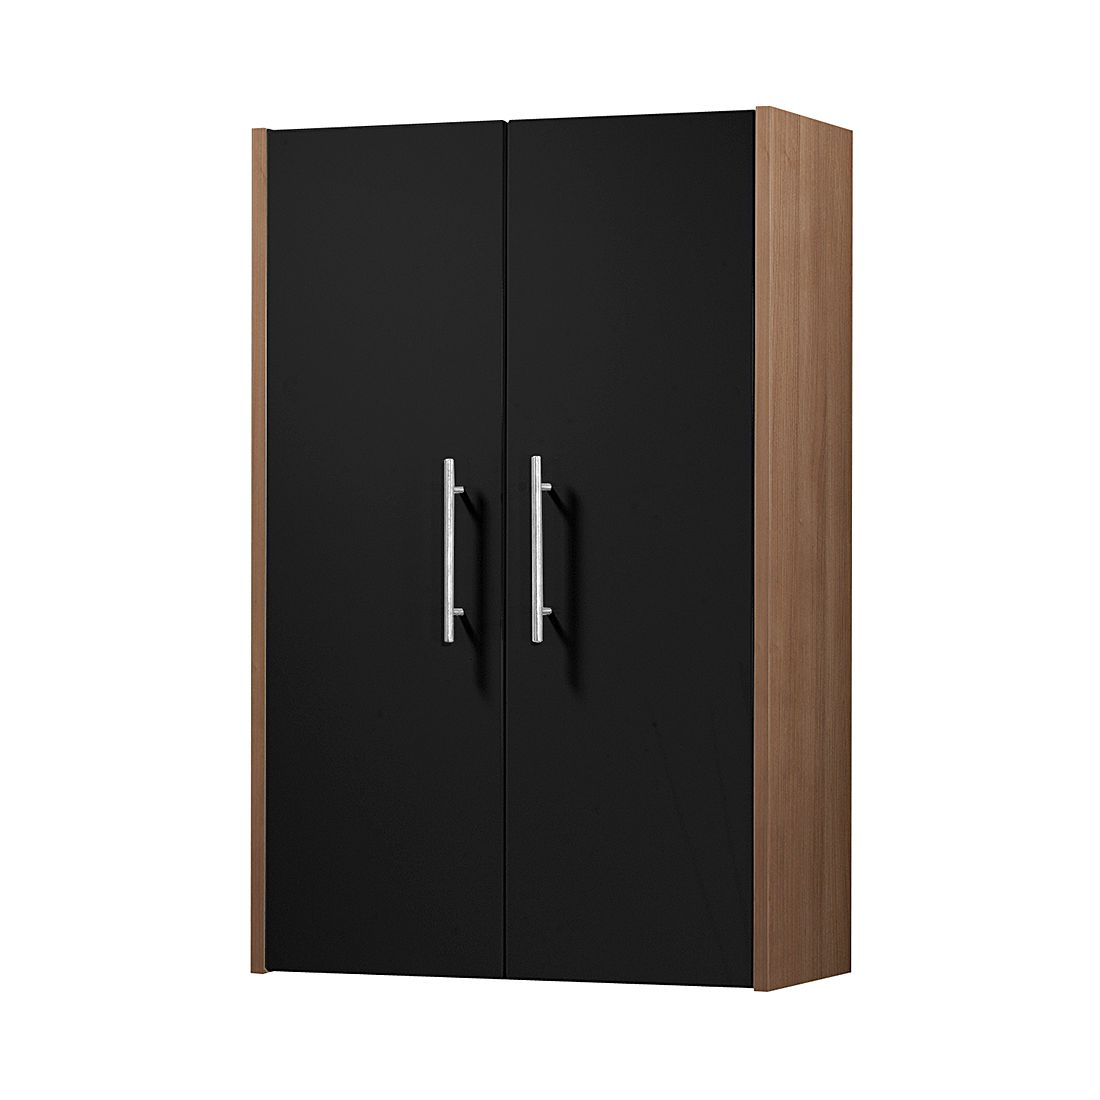 h ngeschrank leon zwetschge dekor schwarz hochglanz fackelmann g nstig online kaufen. Black Bedroom Furniture Sets. Home Design Ideas